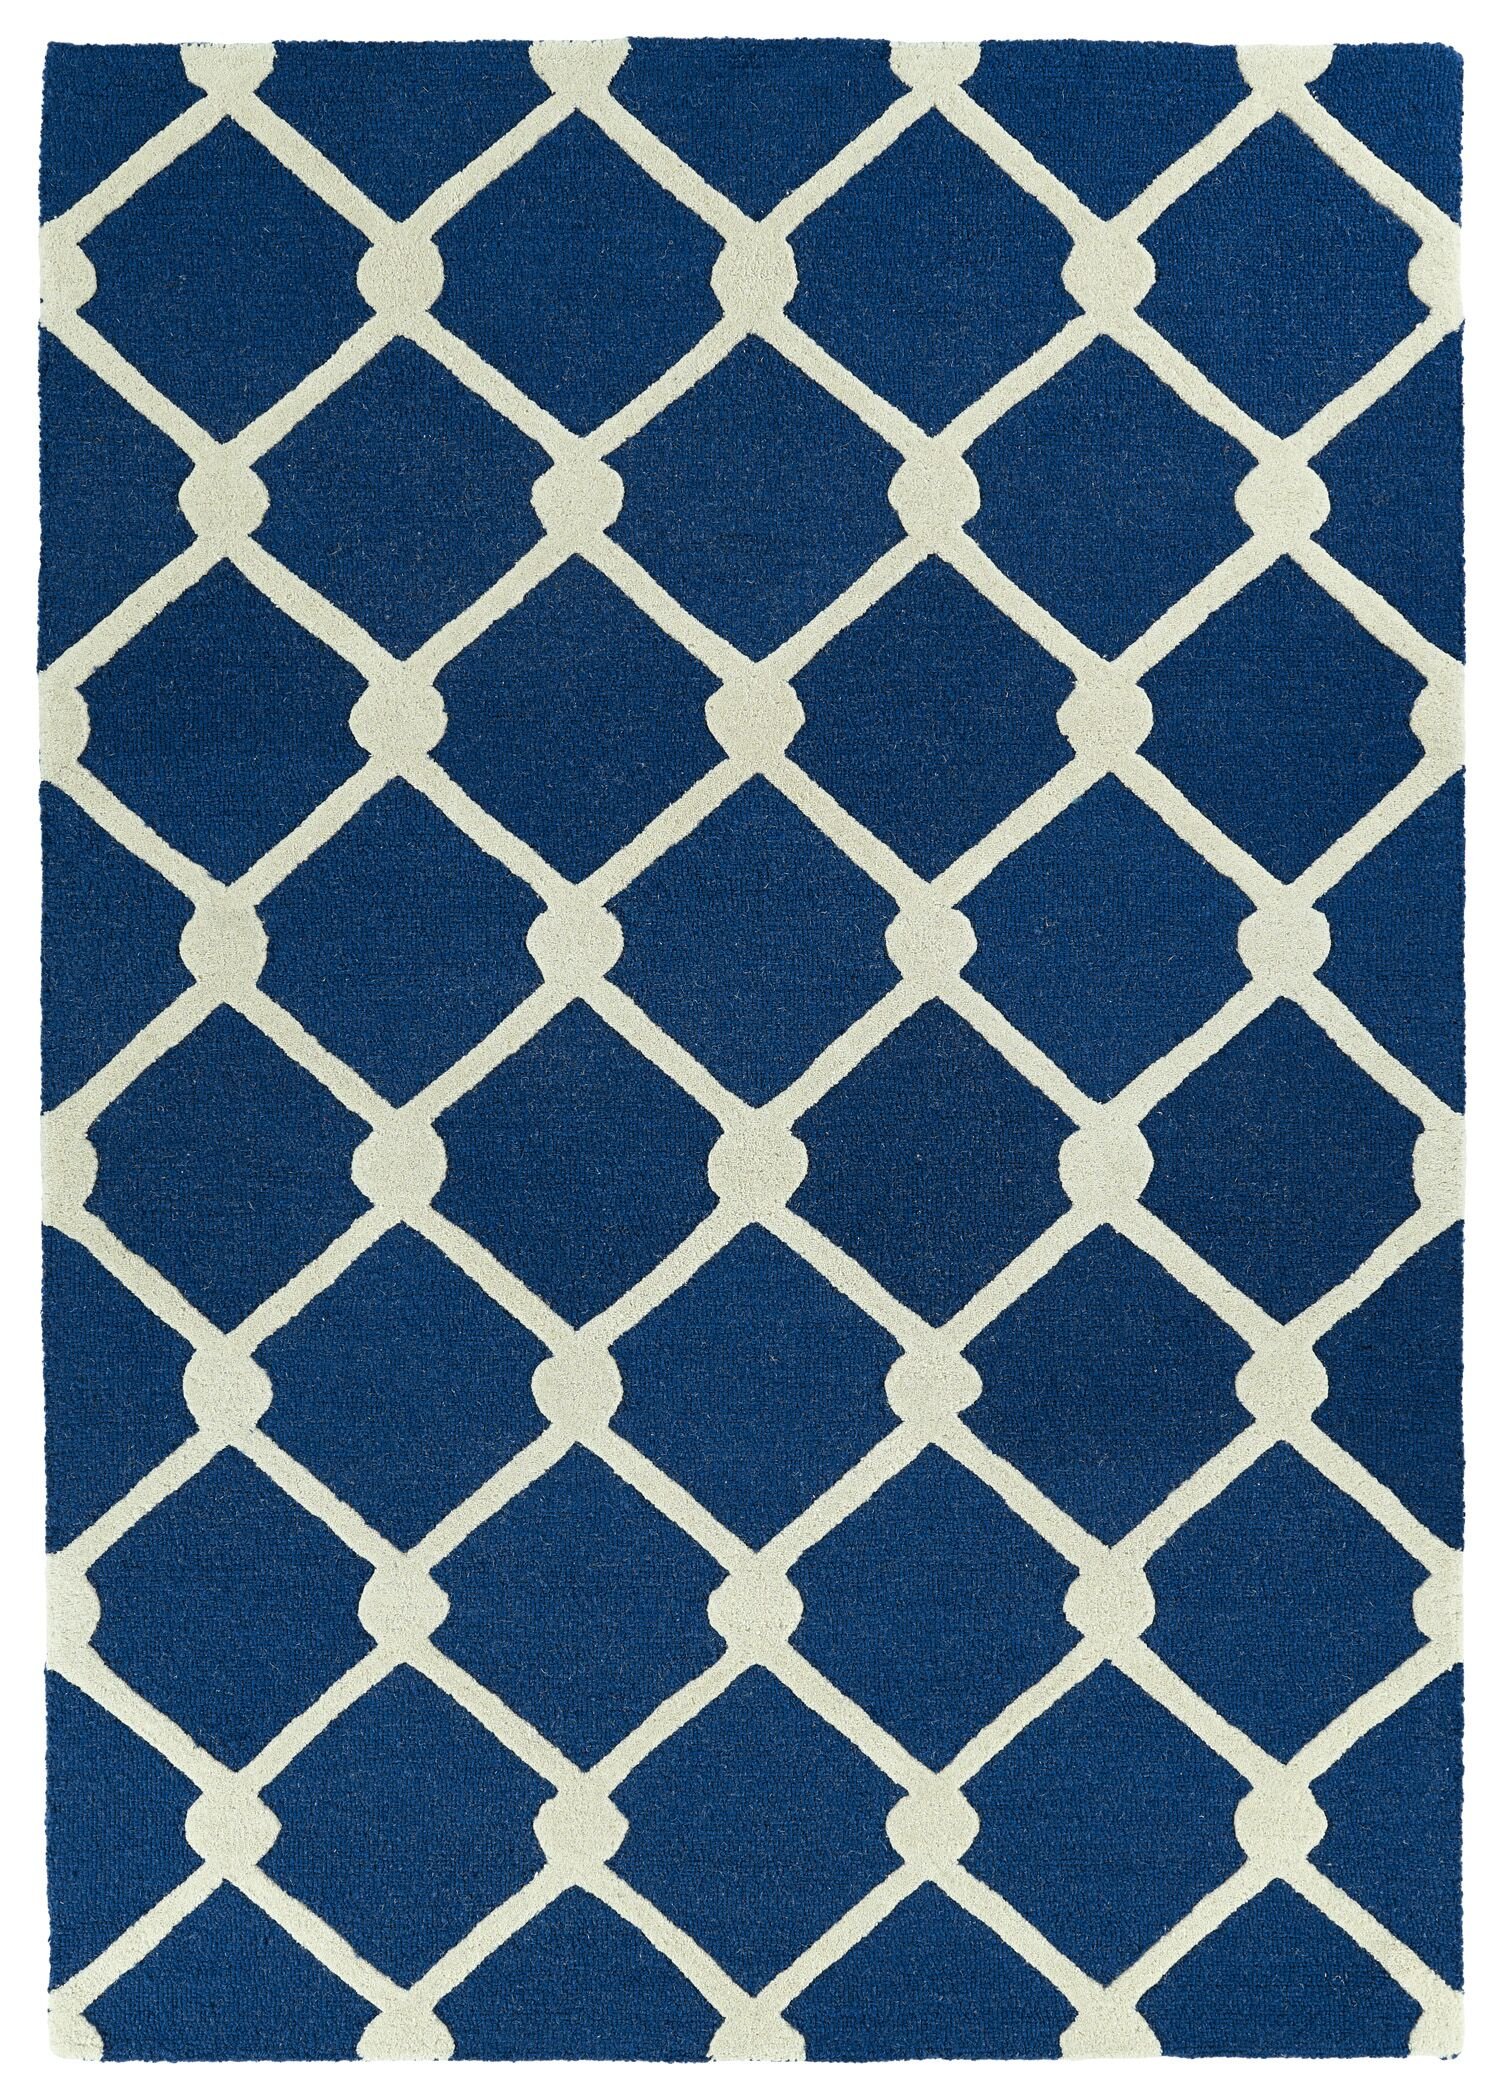 Georgetown Handmade Navy Area Rug Rug Size: Rectangle 5' x 7'